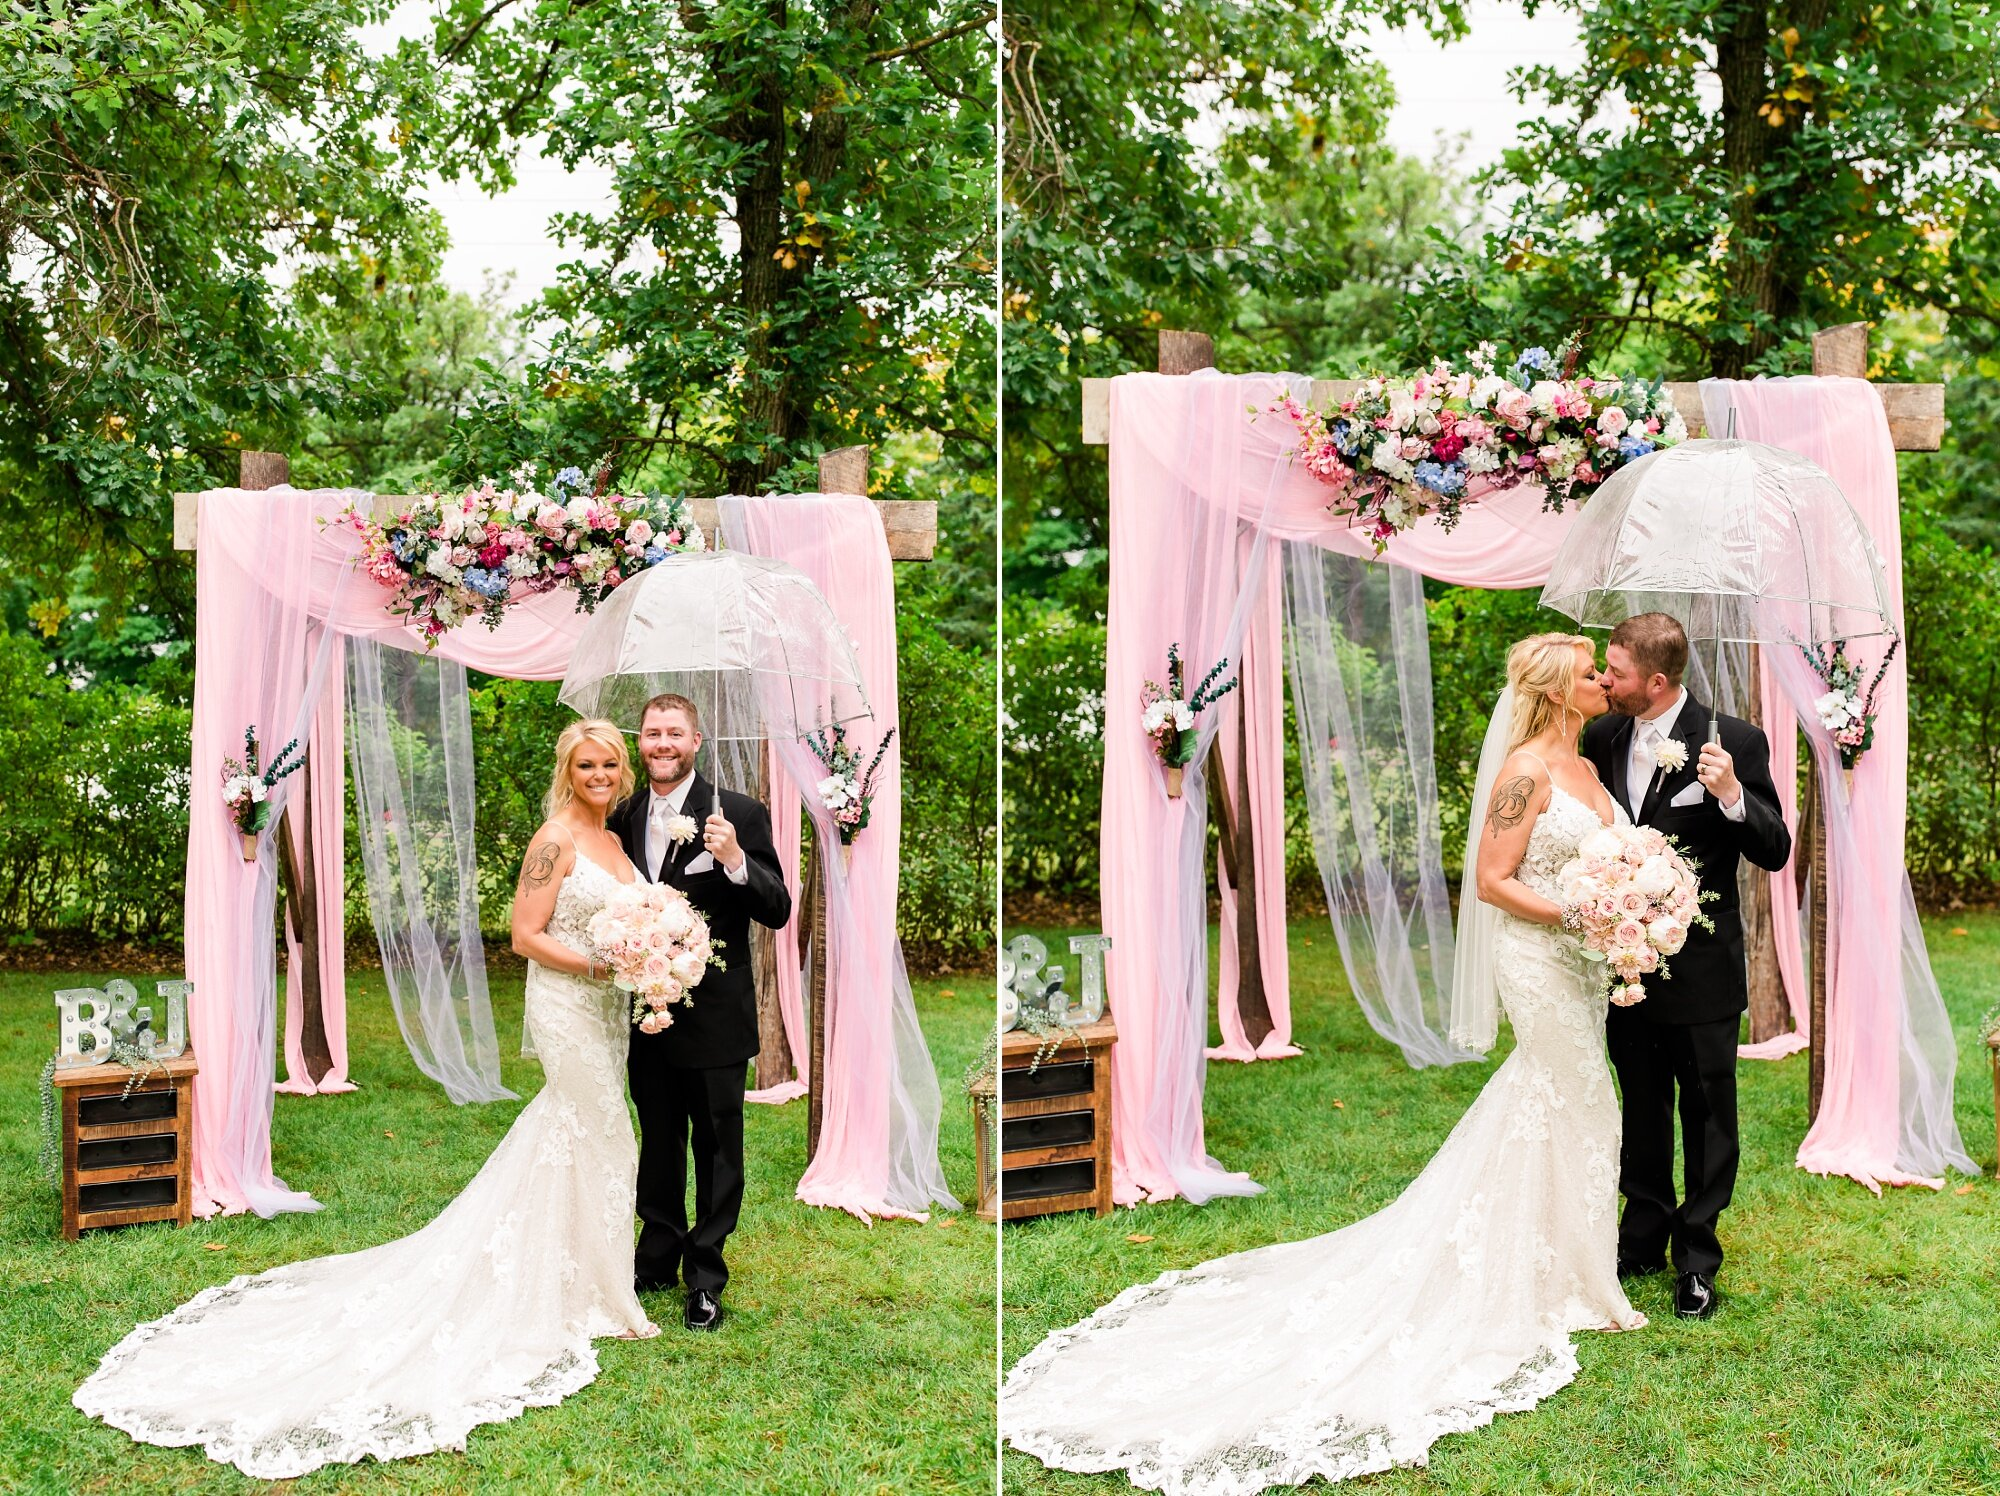 Amber Langerud Photography_Eagle Lake Rustic Styled Outdoor Wedding in Minnesota_6833.jpg